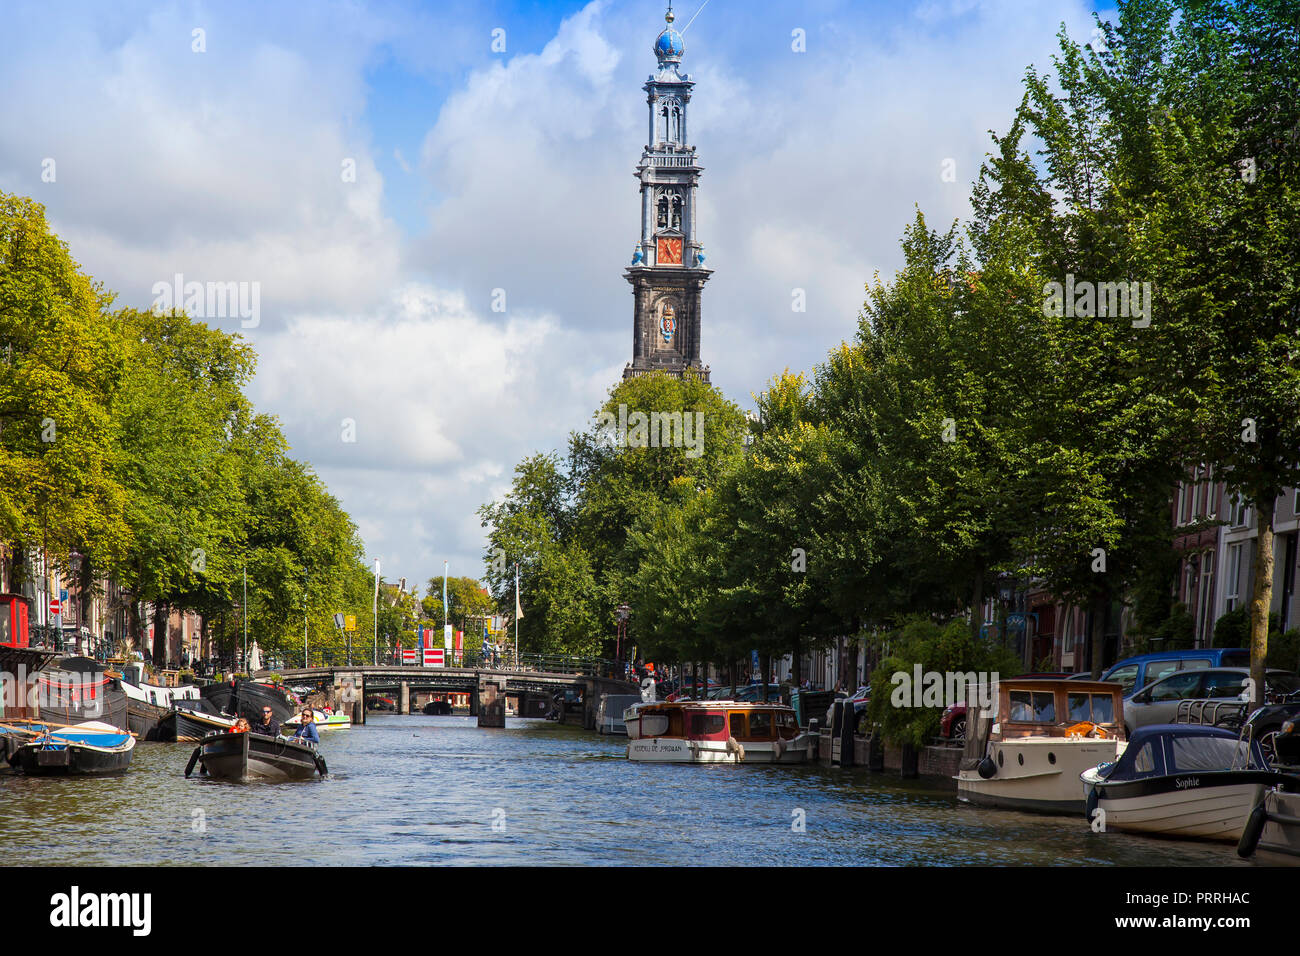 Boats on Prinsengracht, behind the tower of Westerkeerk, Amsterdam, The Netherlands - Stock Image